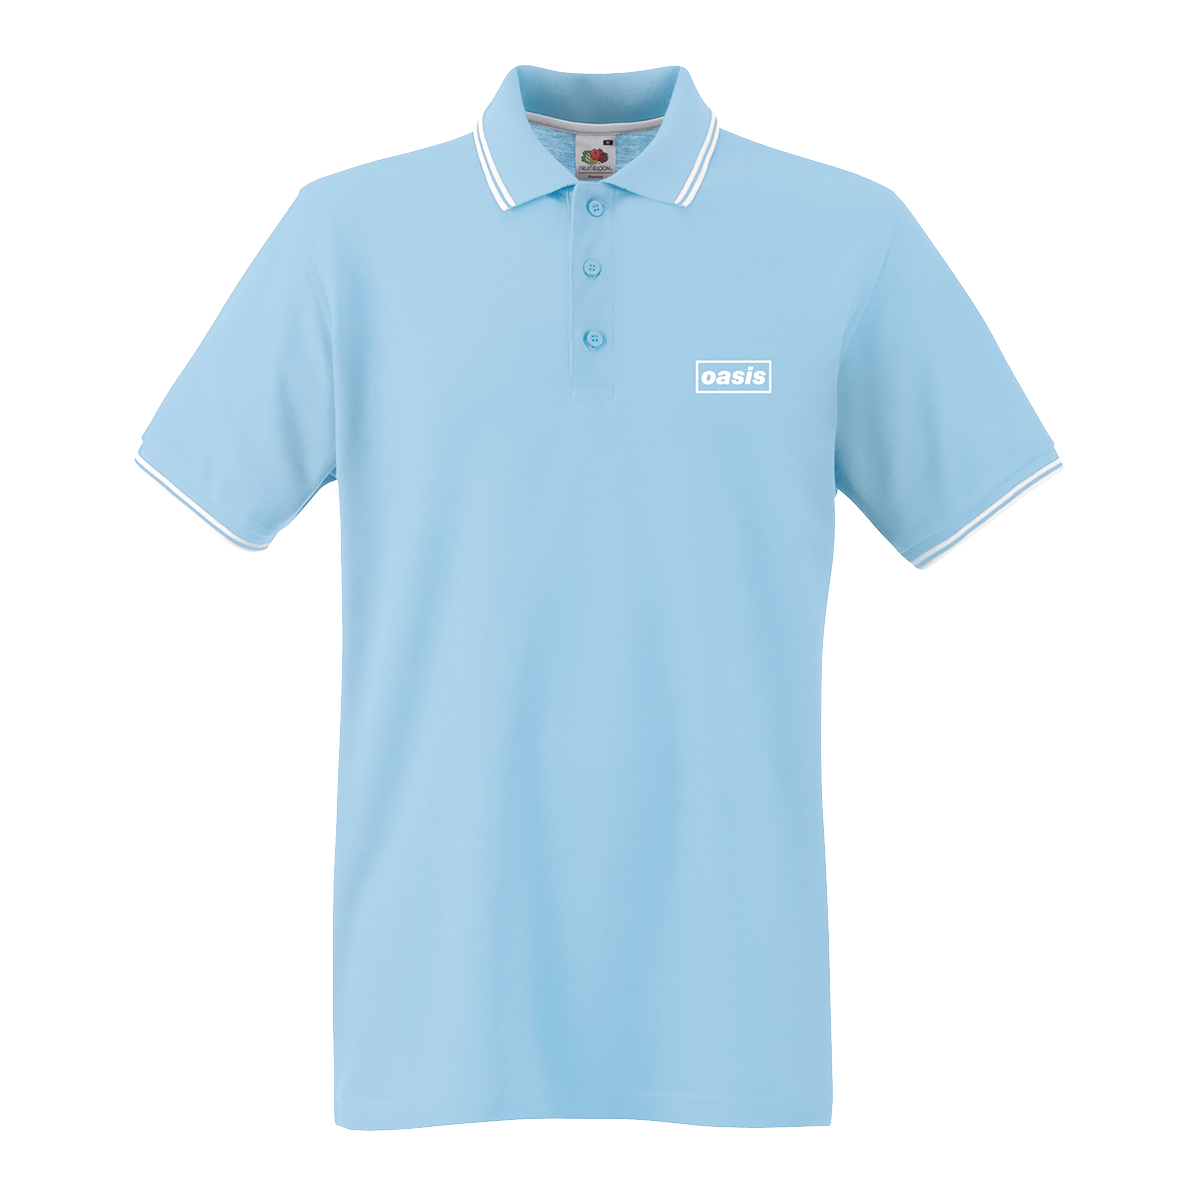 Buy Online Oasis - Oasis Replica Tour Sky Blue Polo